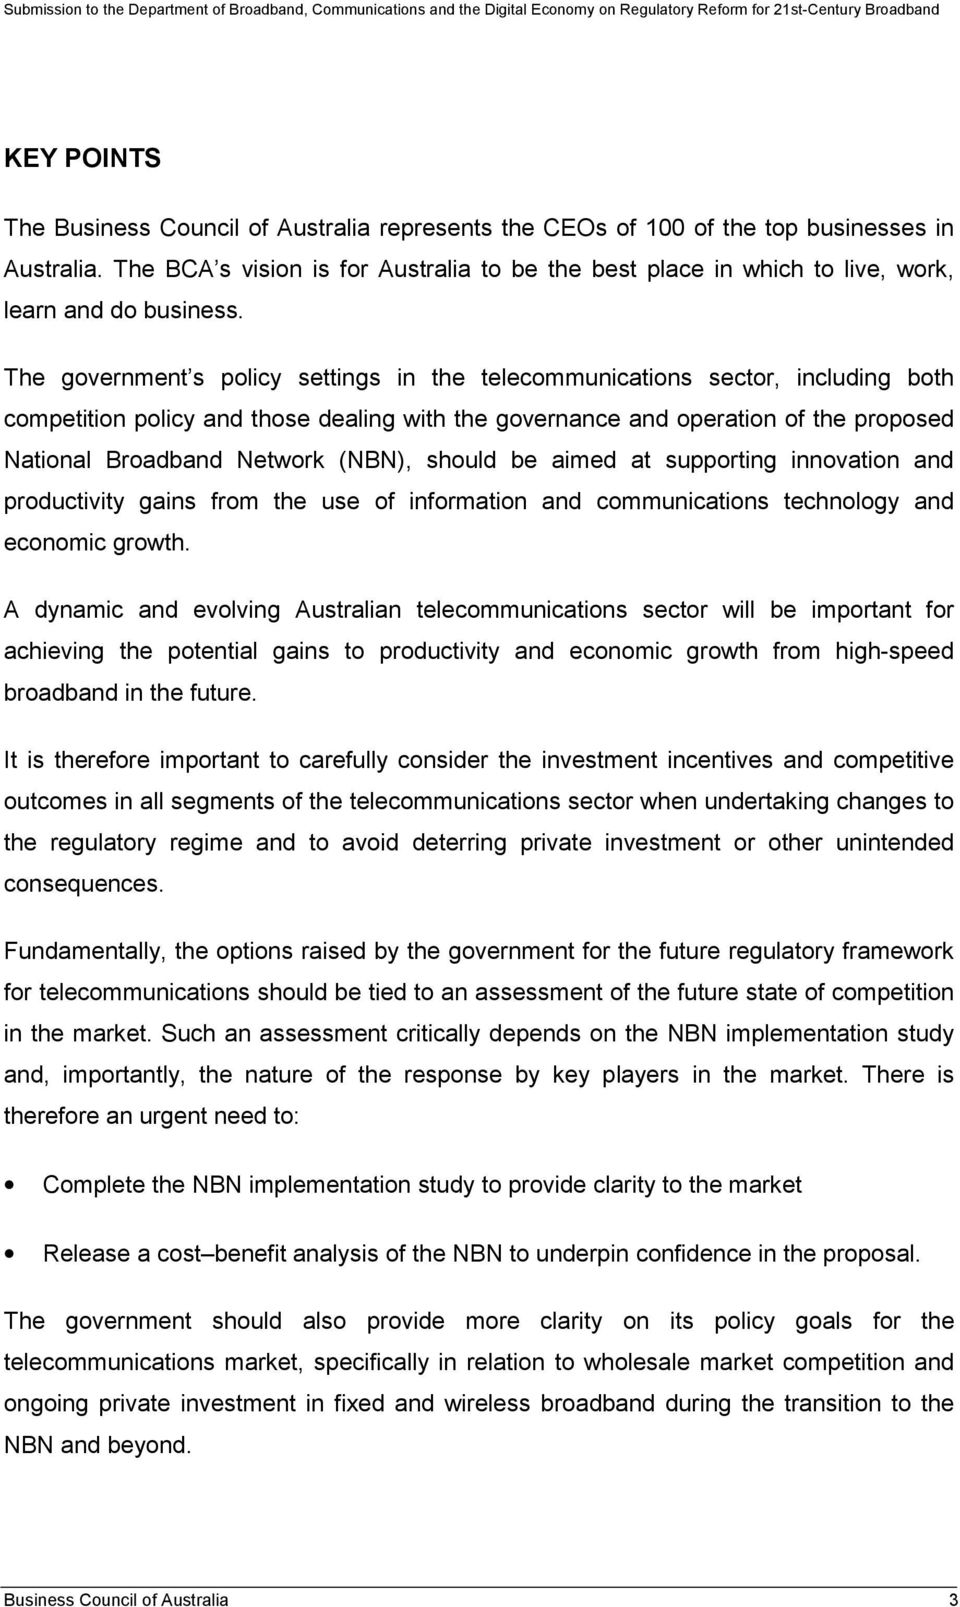 The government s policy settings in the telecommunications sector, including both competition policy and those dealing with the governance and operation of the proposed National Broadband Network